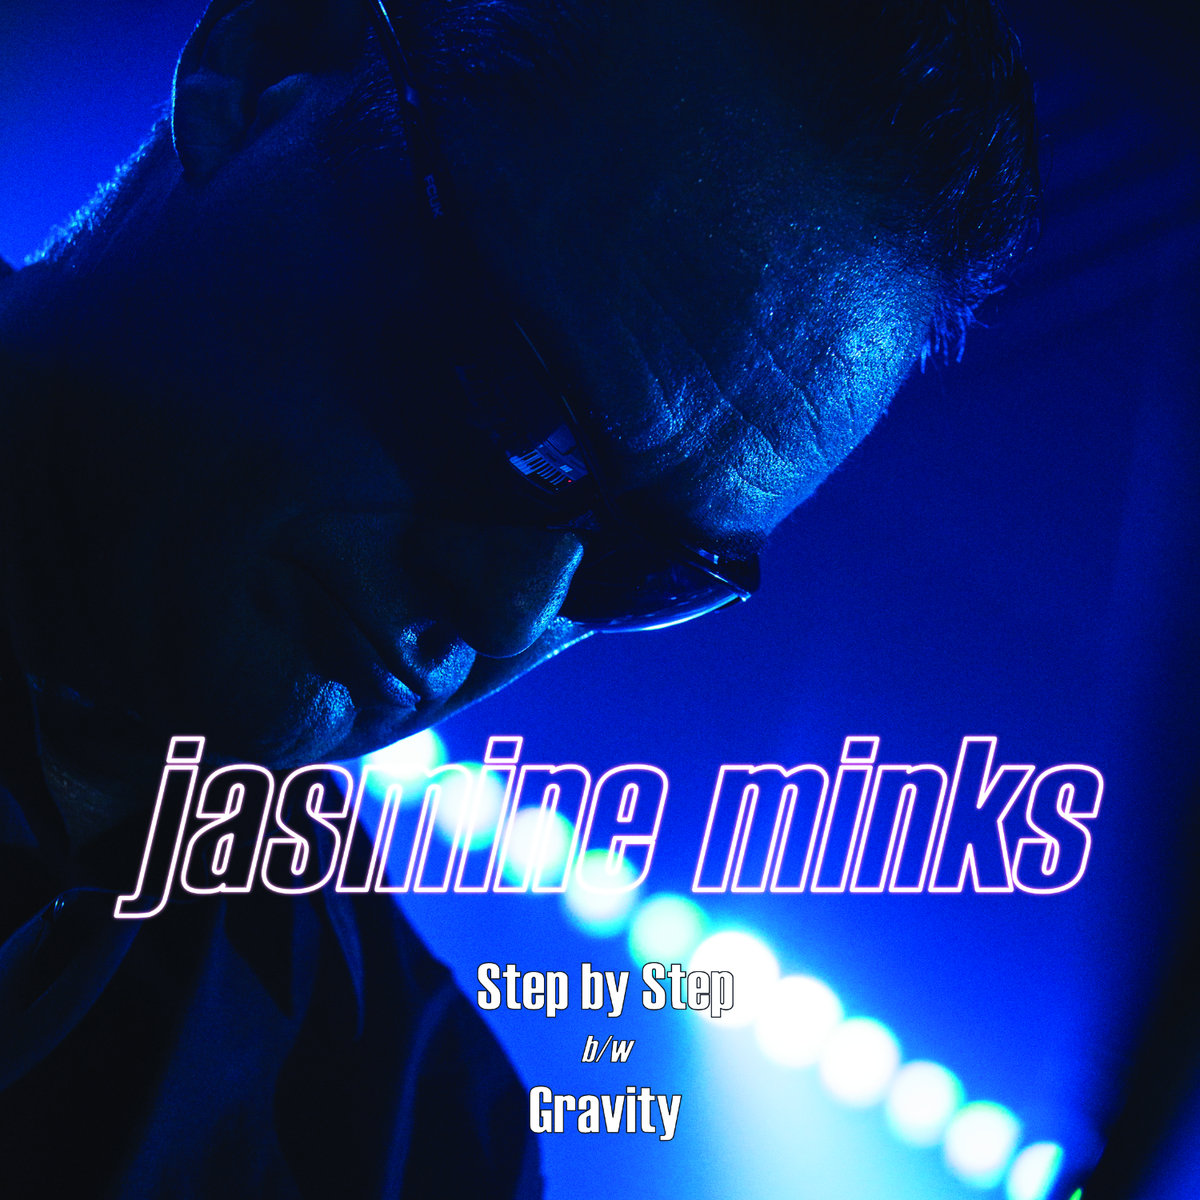 """Stereo Embers' TRACK OF THE DAY: The Jasmine Minks' """"Step by Step"""""""